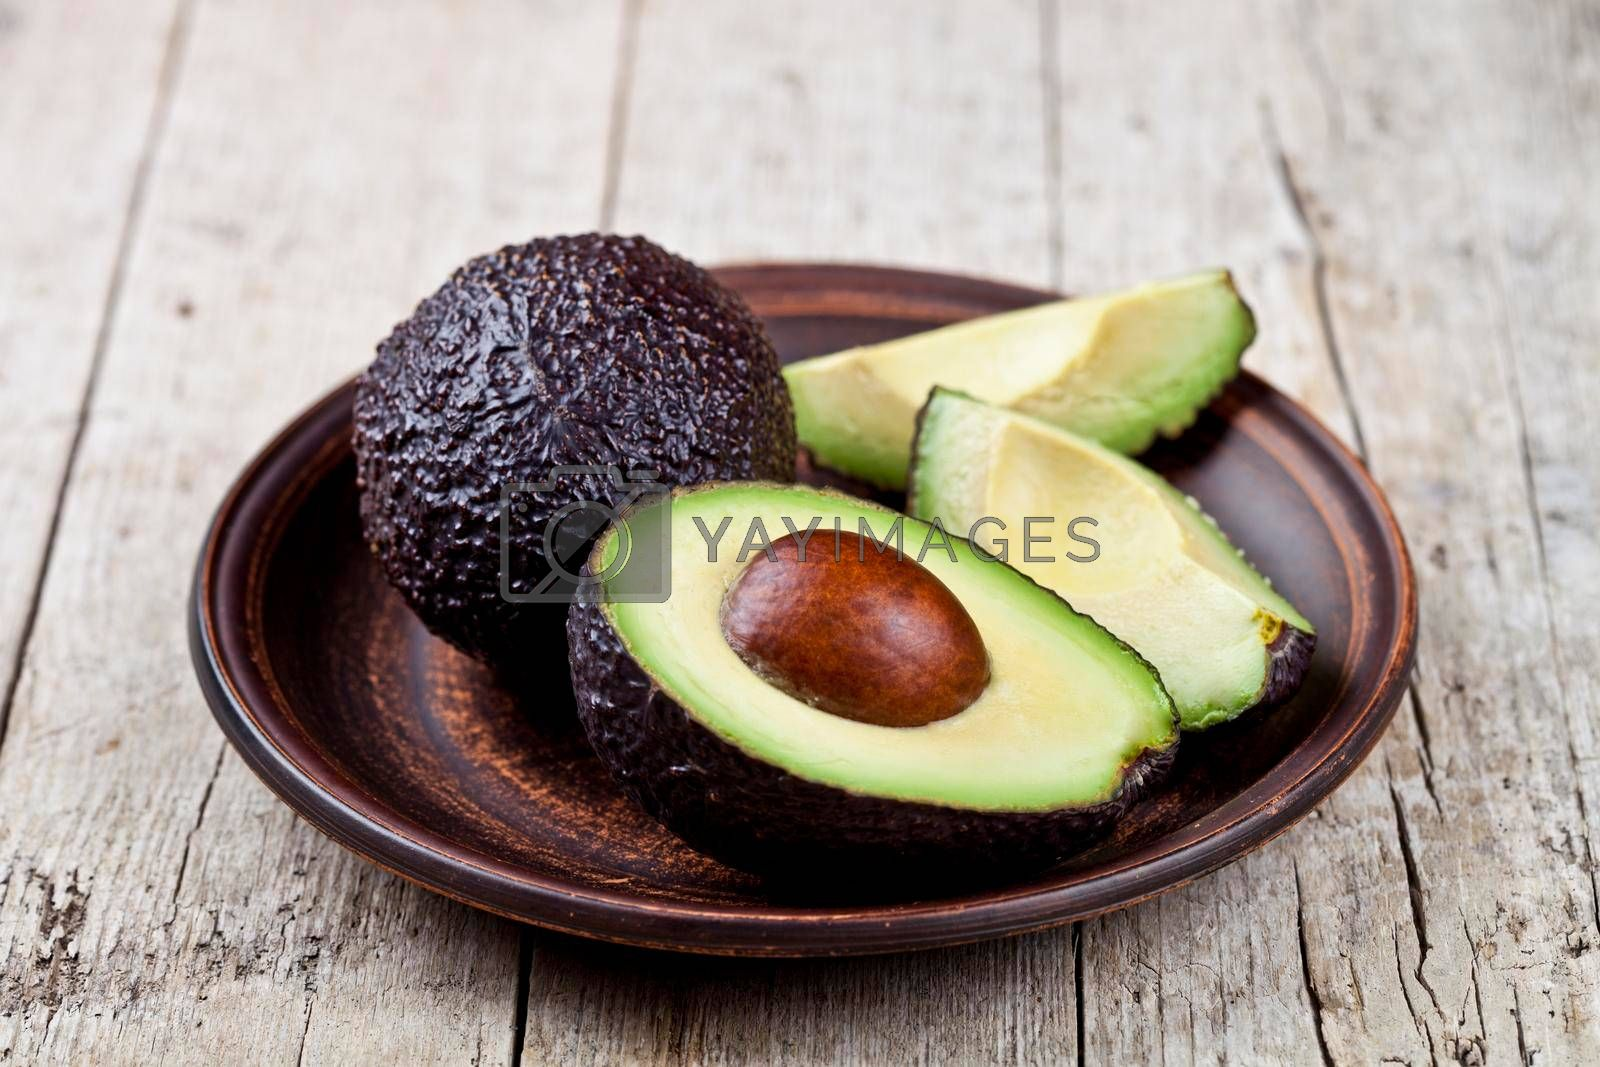 Fresh organic avocado on ceramic plate on rustic wooden table background. Healthy food concept.